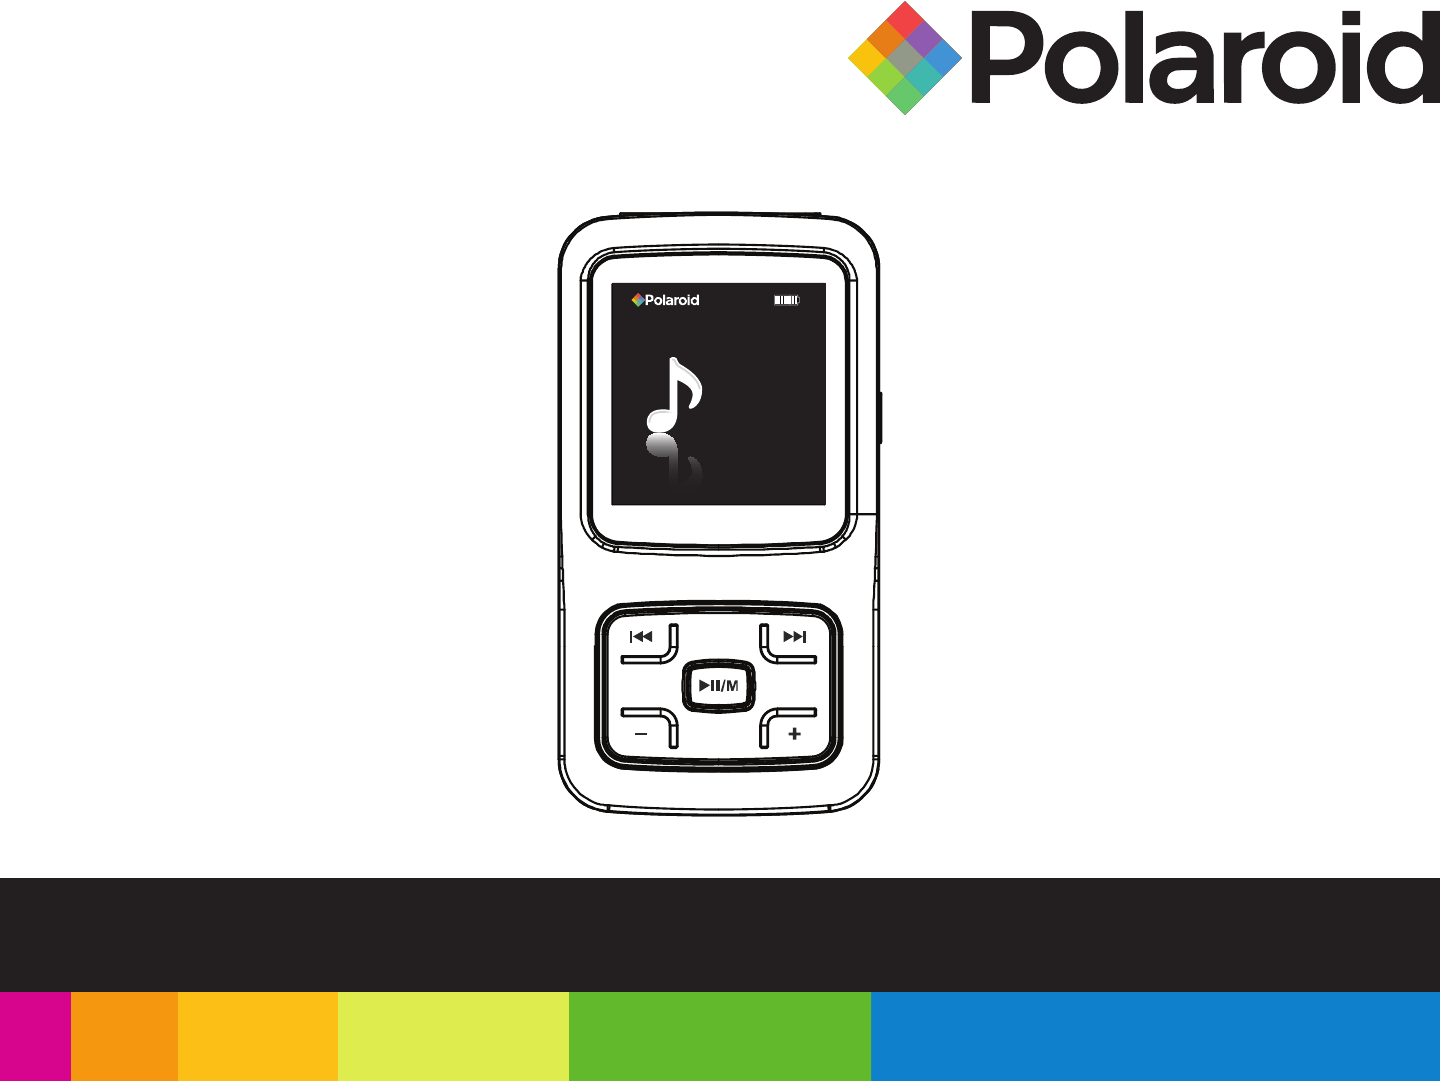 polaroid mp3 player pmp150 user guide manualsonline com rh portablemedia manualsonline com Polaroid MP3 Player Software Polaroid MP3 Player with 7 Inch